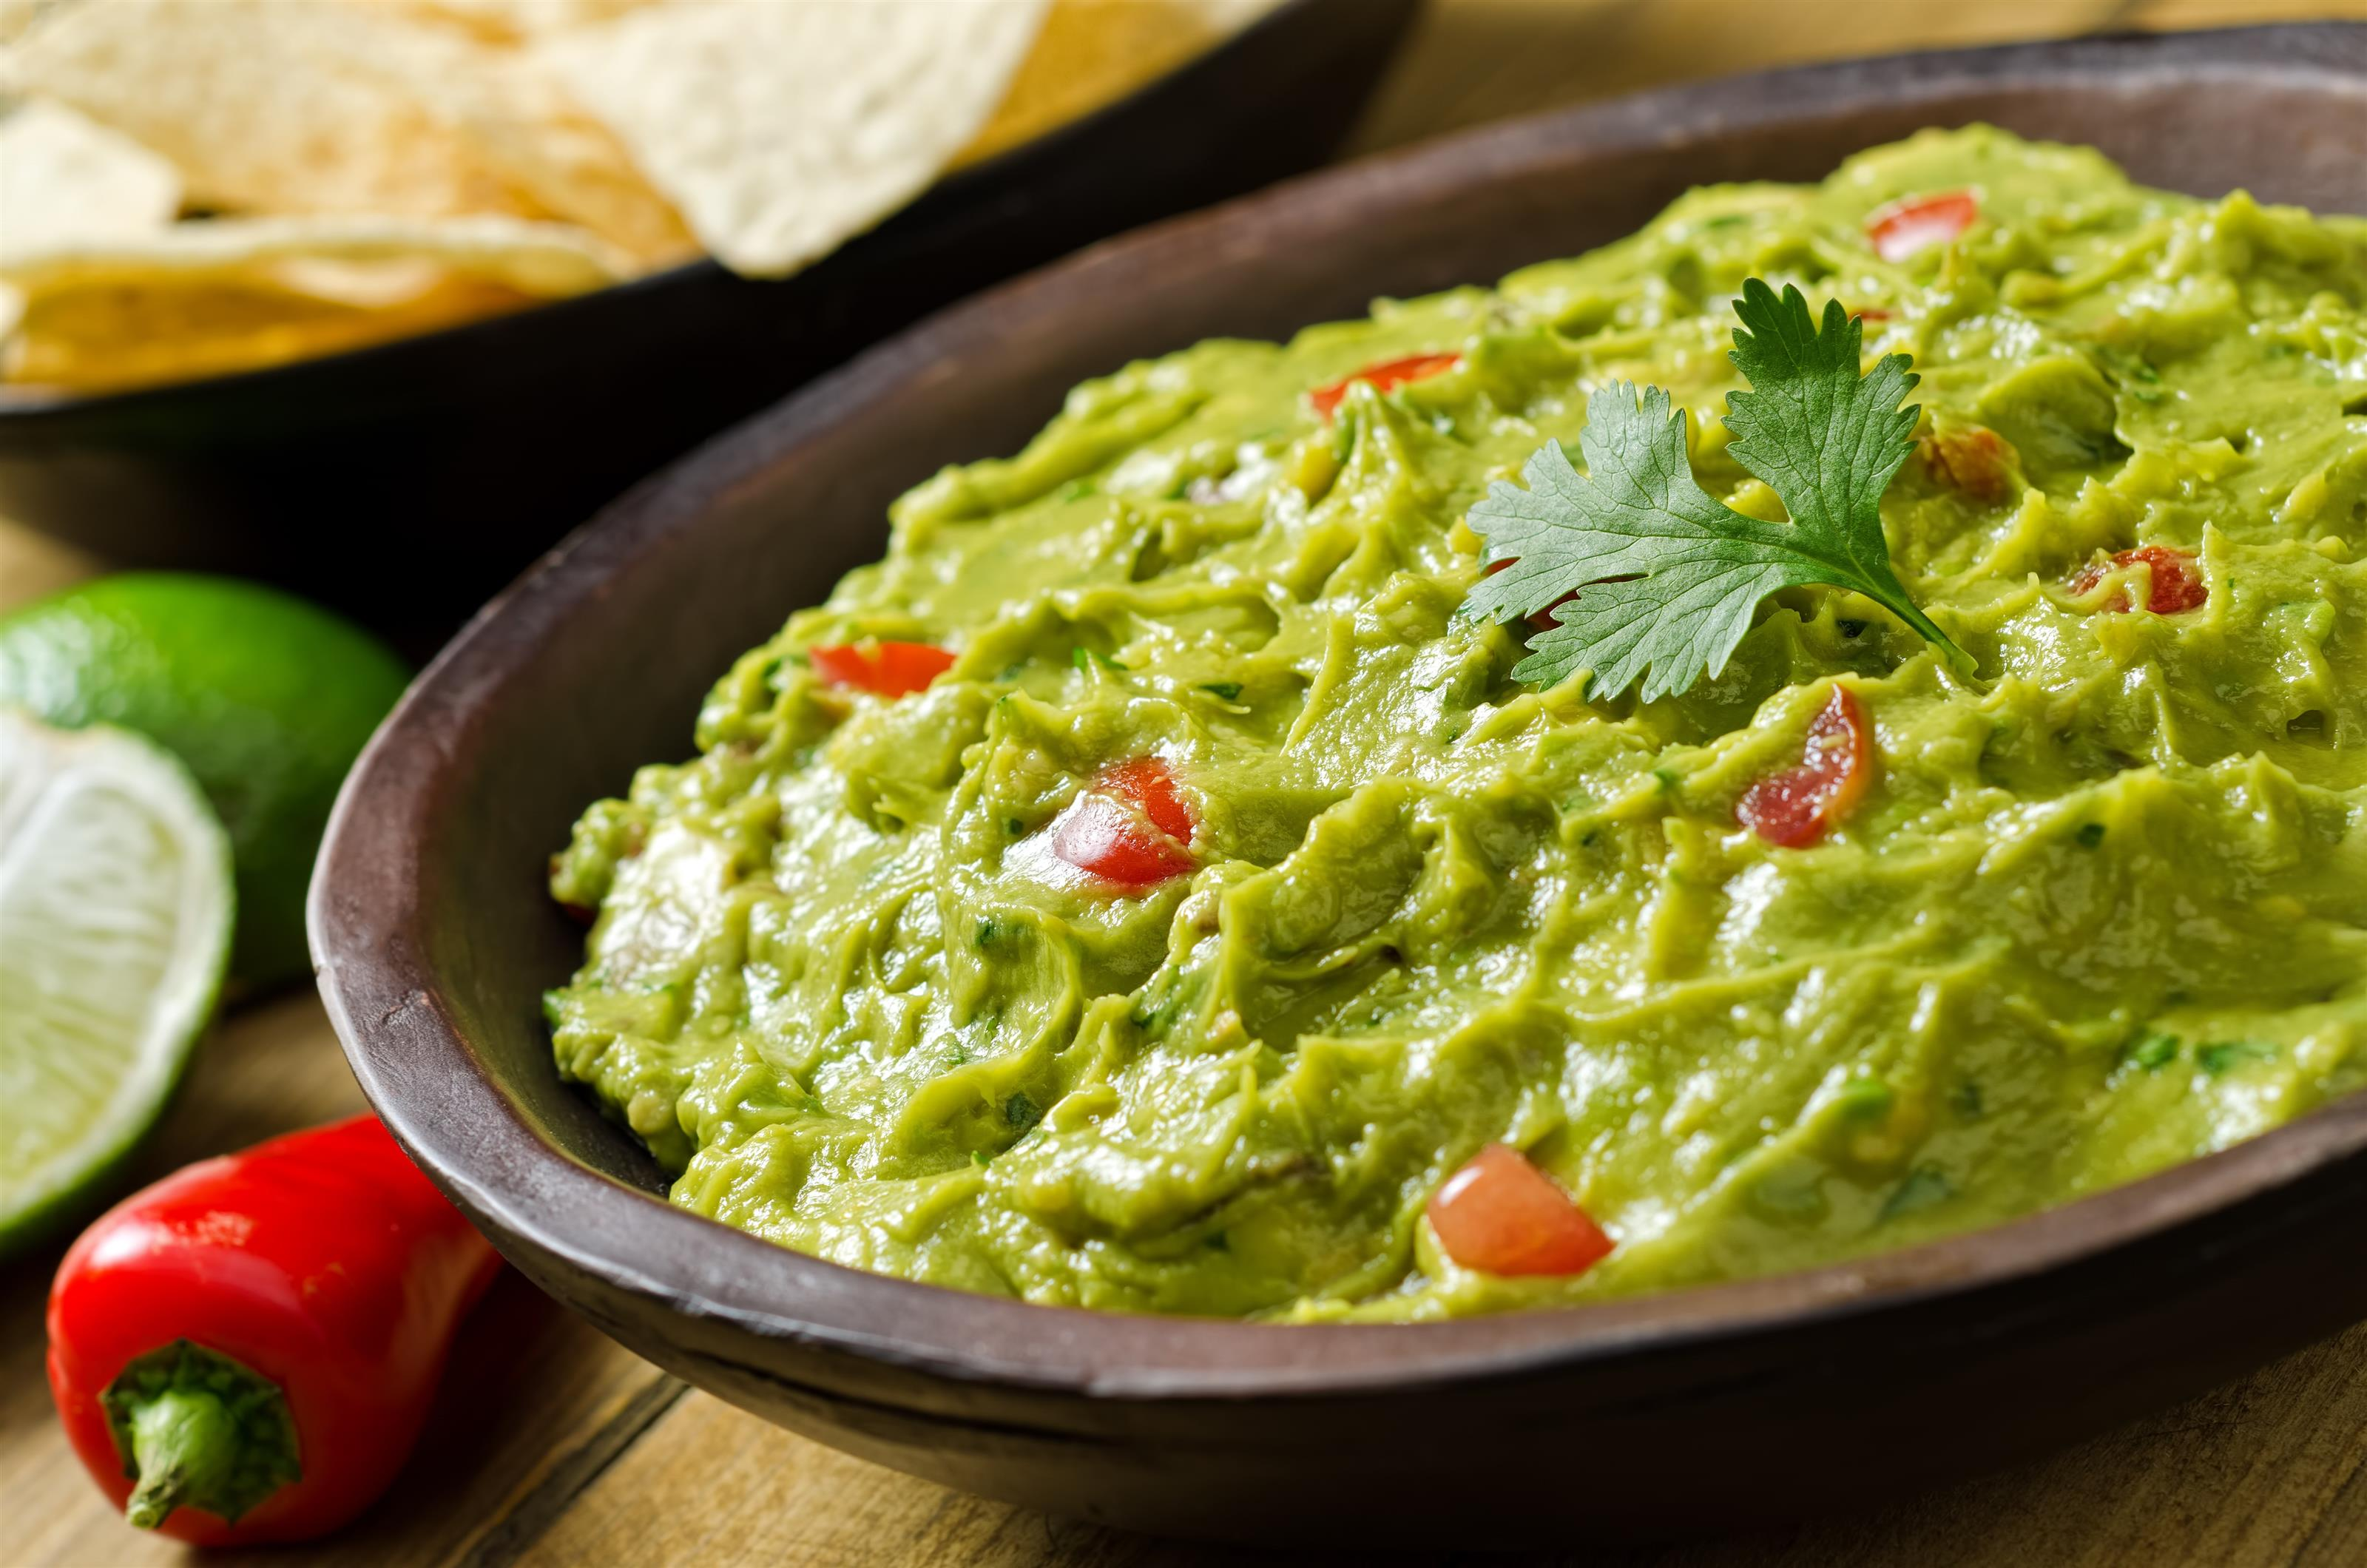 Bowl of fresh guacamole